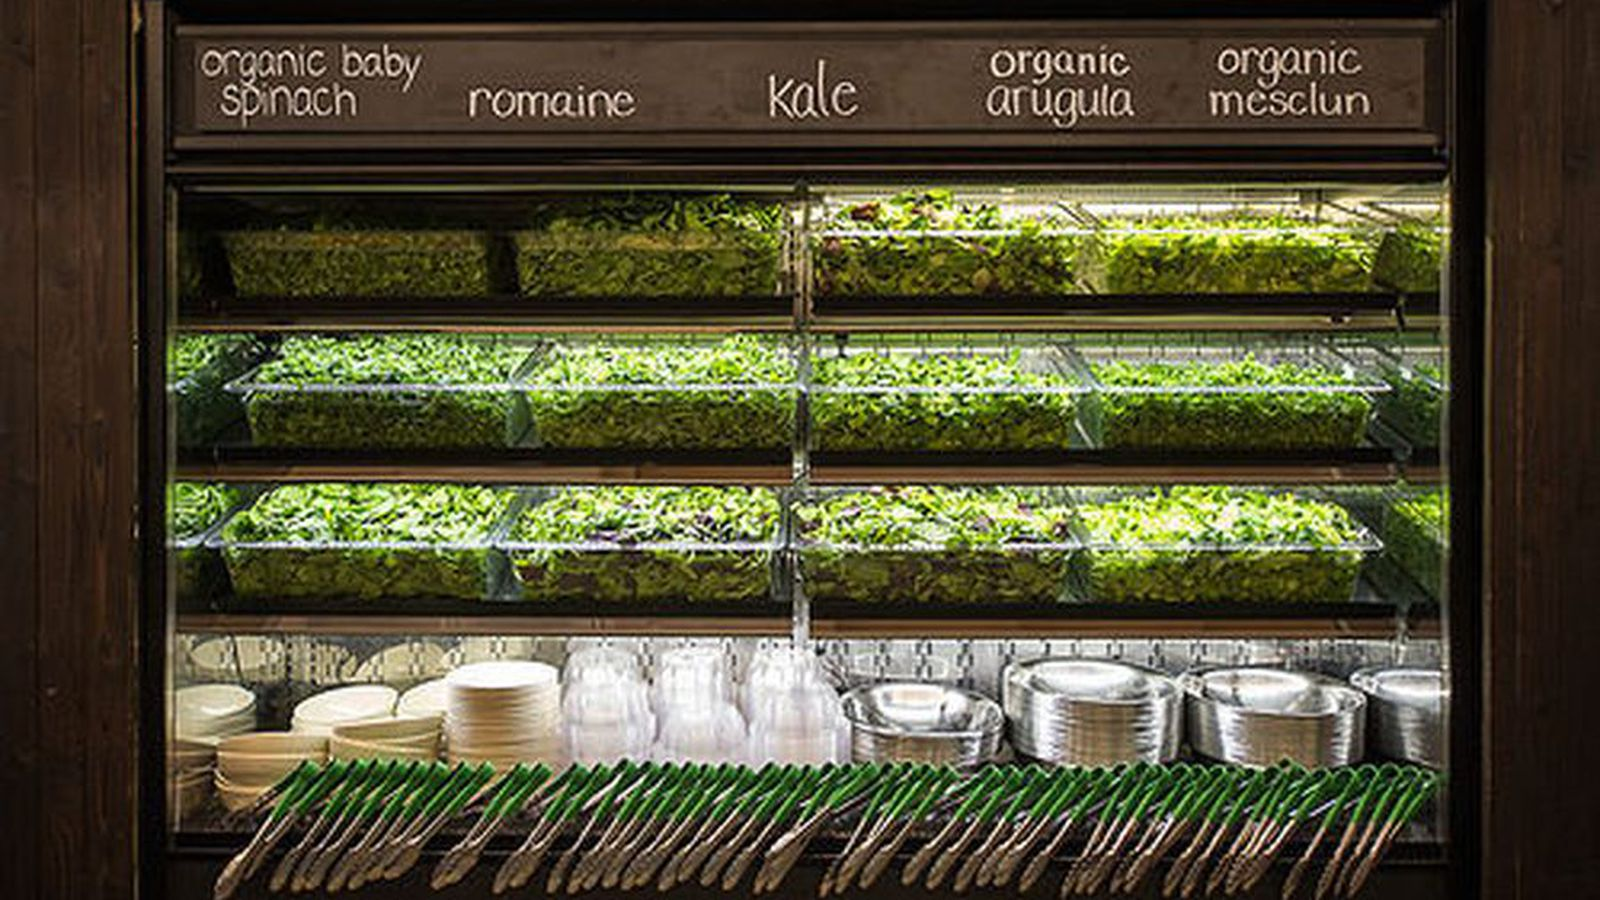 Sweetgreen Is Targeting New York for Even More Locations ...